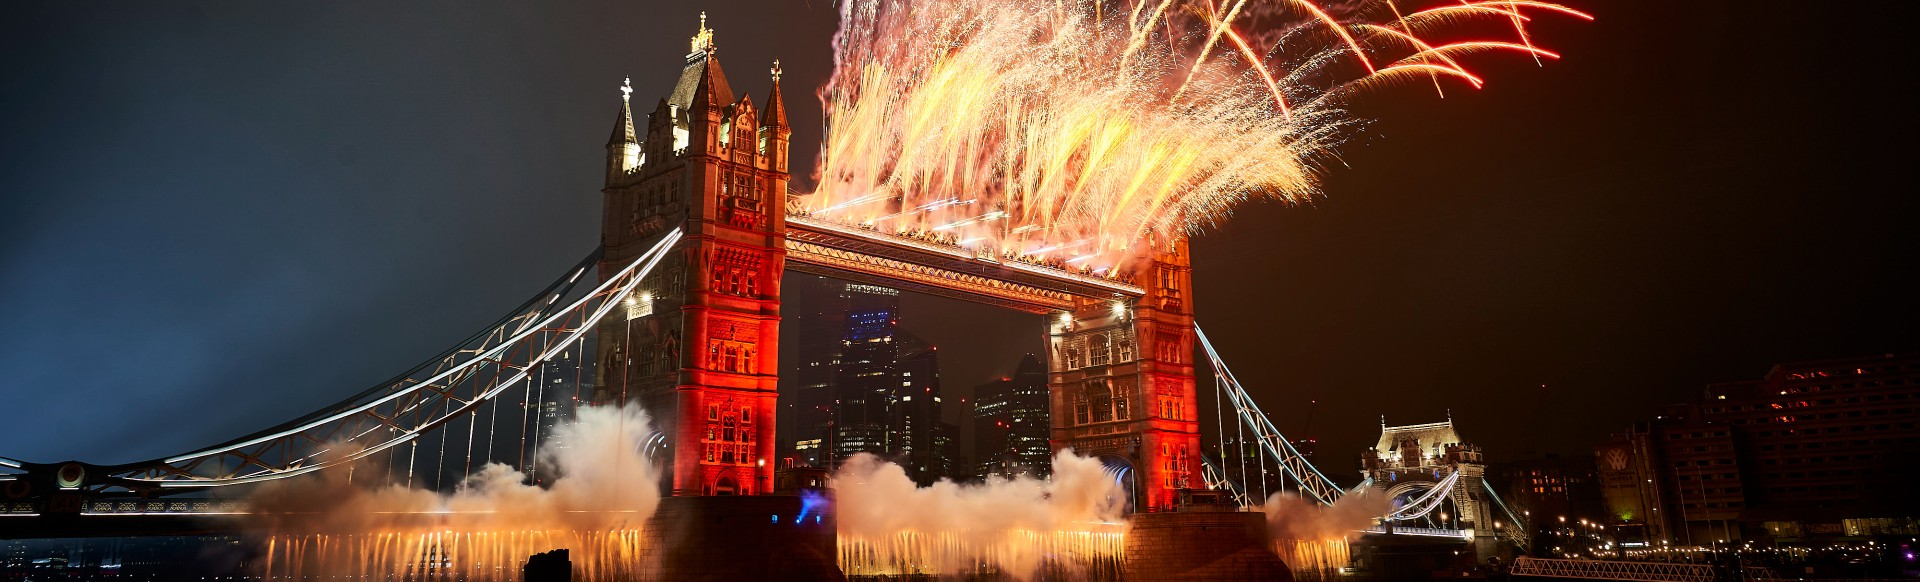 View of London's spectacular New Year's Eve fireworks over Tower Bridge.